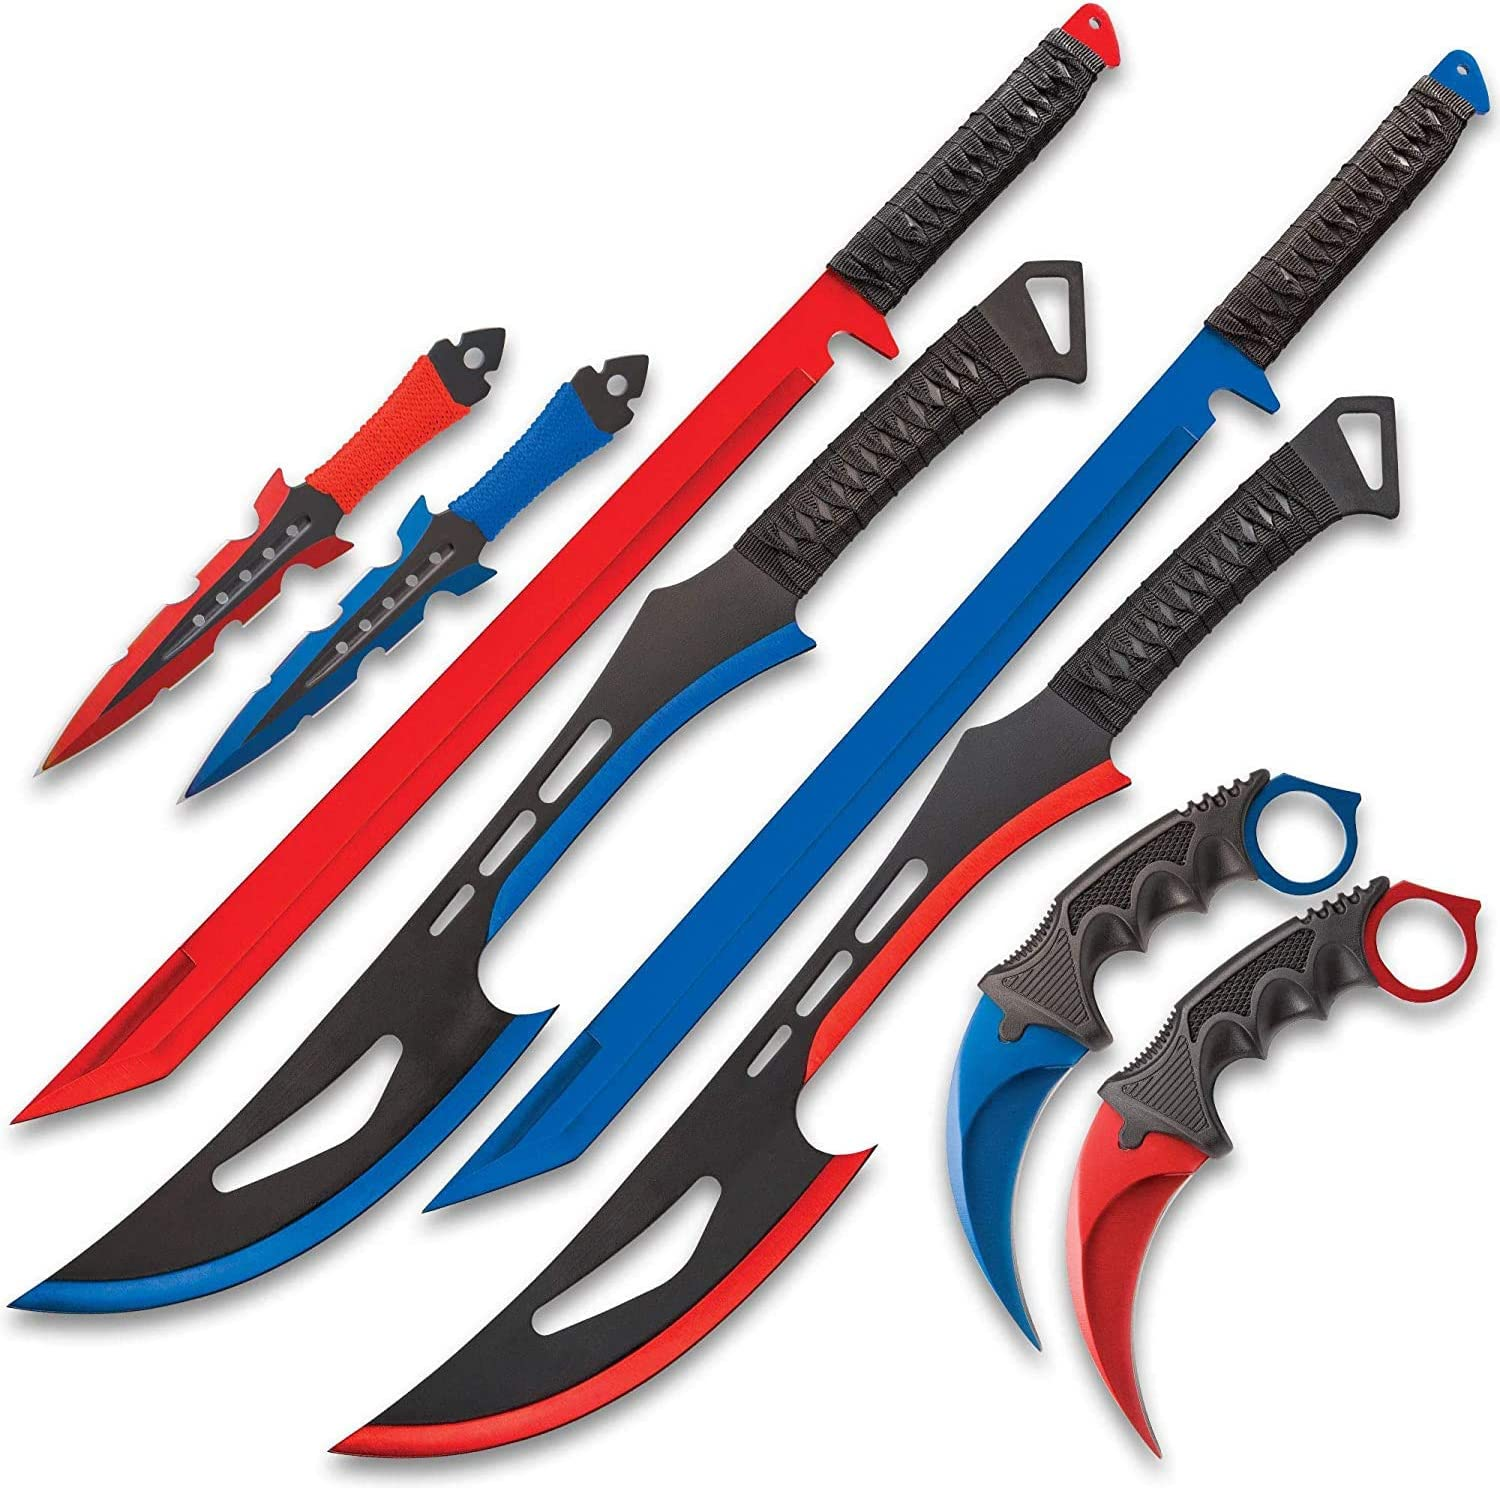 Black Legion Ranking TOP10 Fire and Ice Battle Stainless T Blades - Ranking TOP1 Steel Set